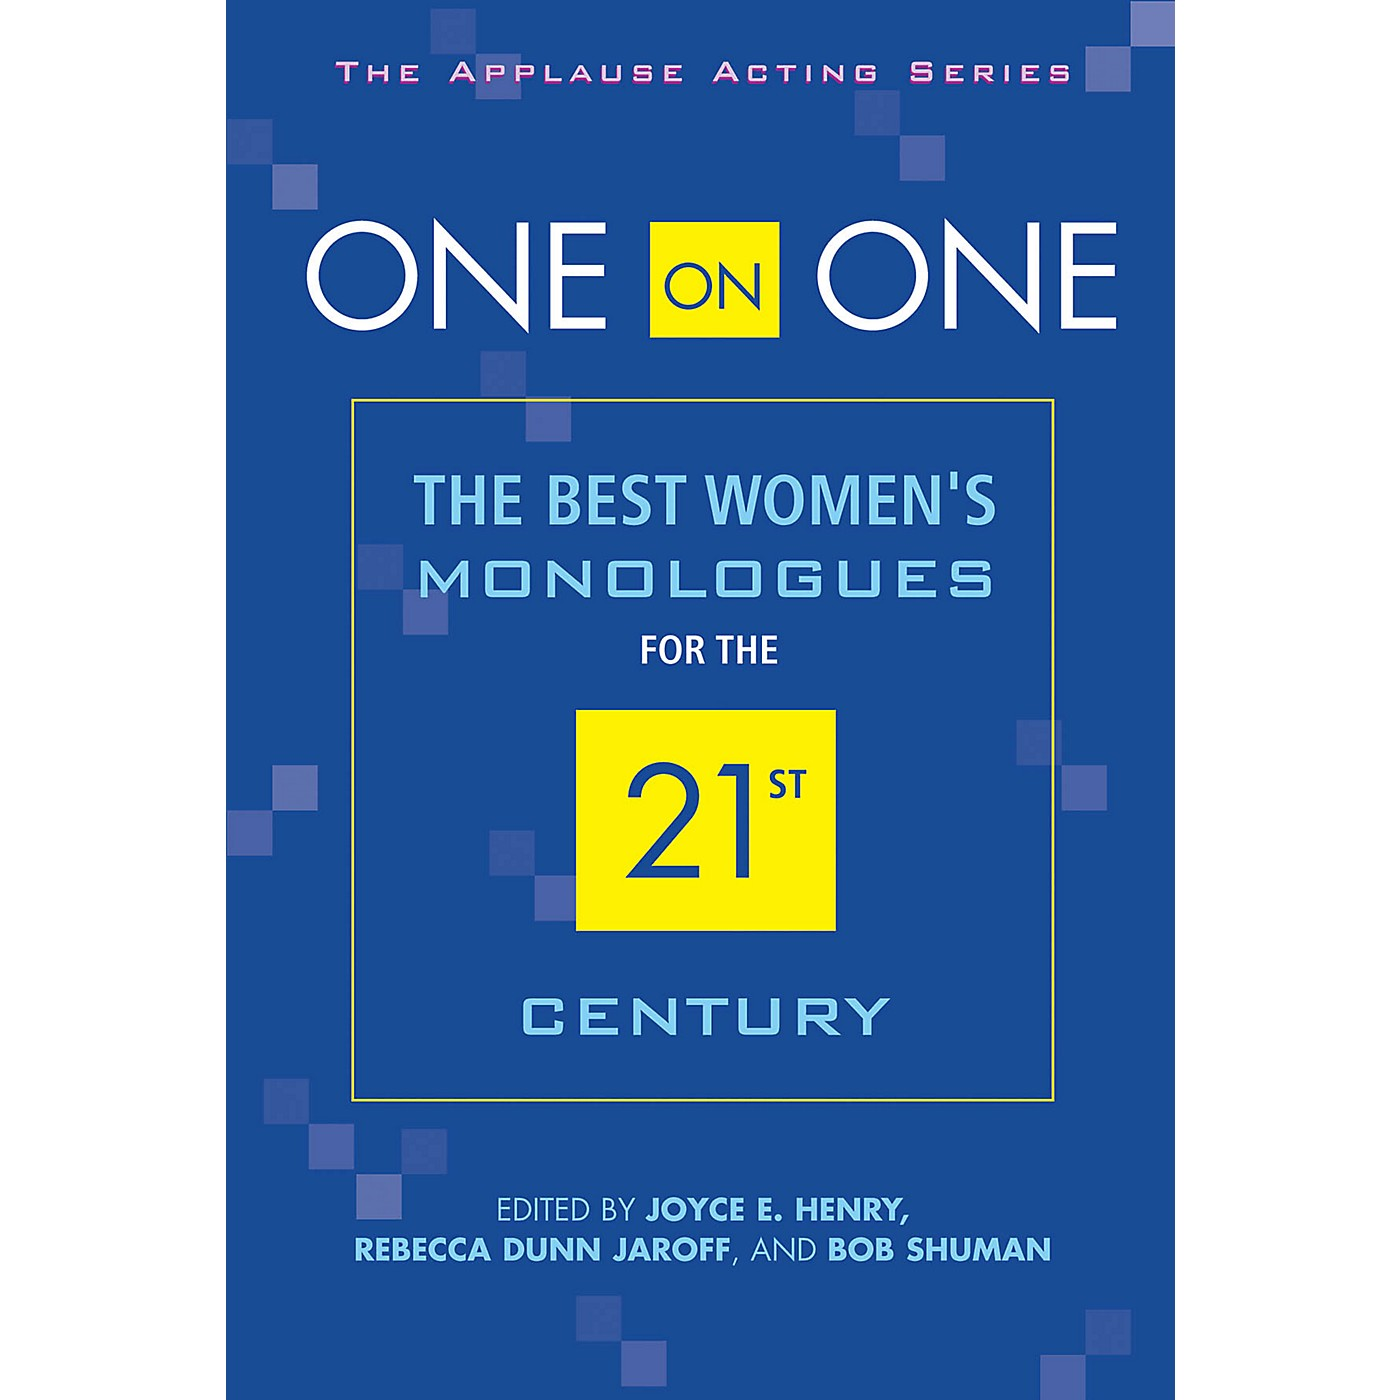 Applause Books One on One (The Best Women's Monologues for the 21st Century) Applause Acting Series Series Softcover thumbnail